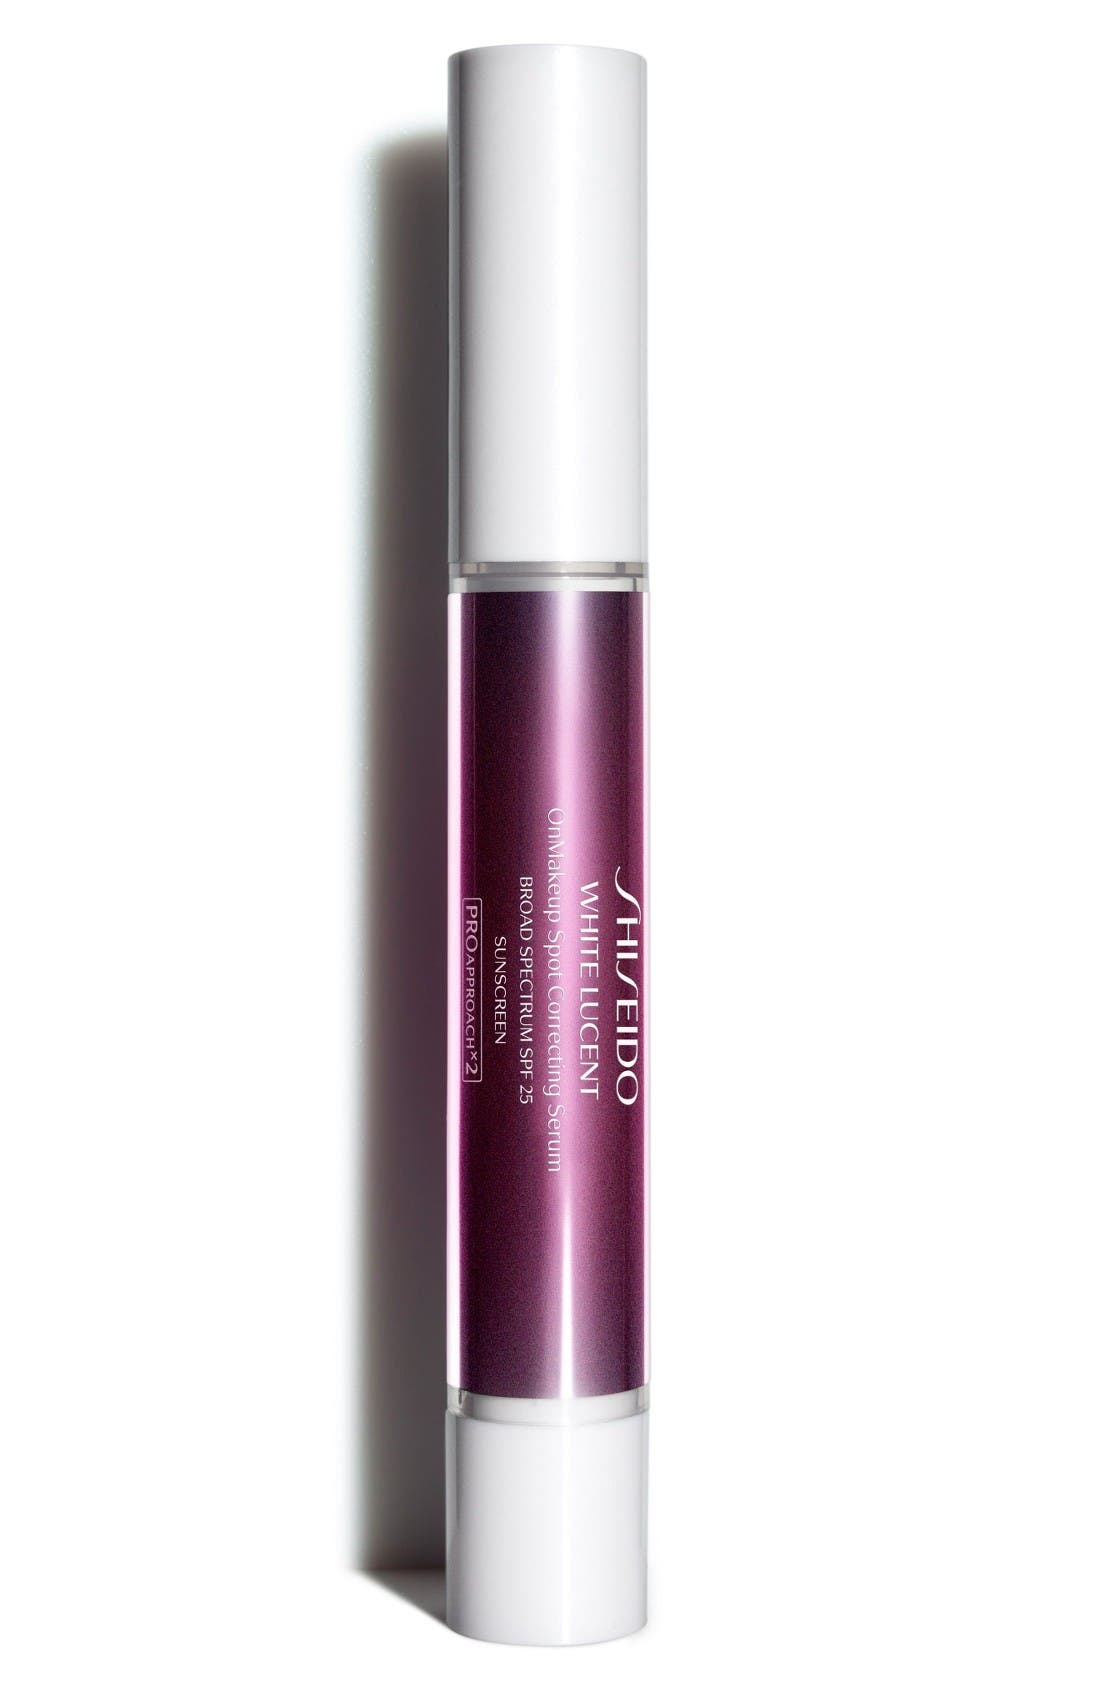 White Lucent OnMakeup Spot Correcting Serum Broad Spectrum SPF 25,                             Main thumbnail 1, color,                             Medium